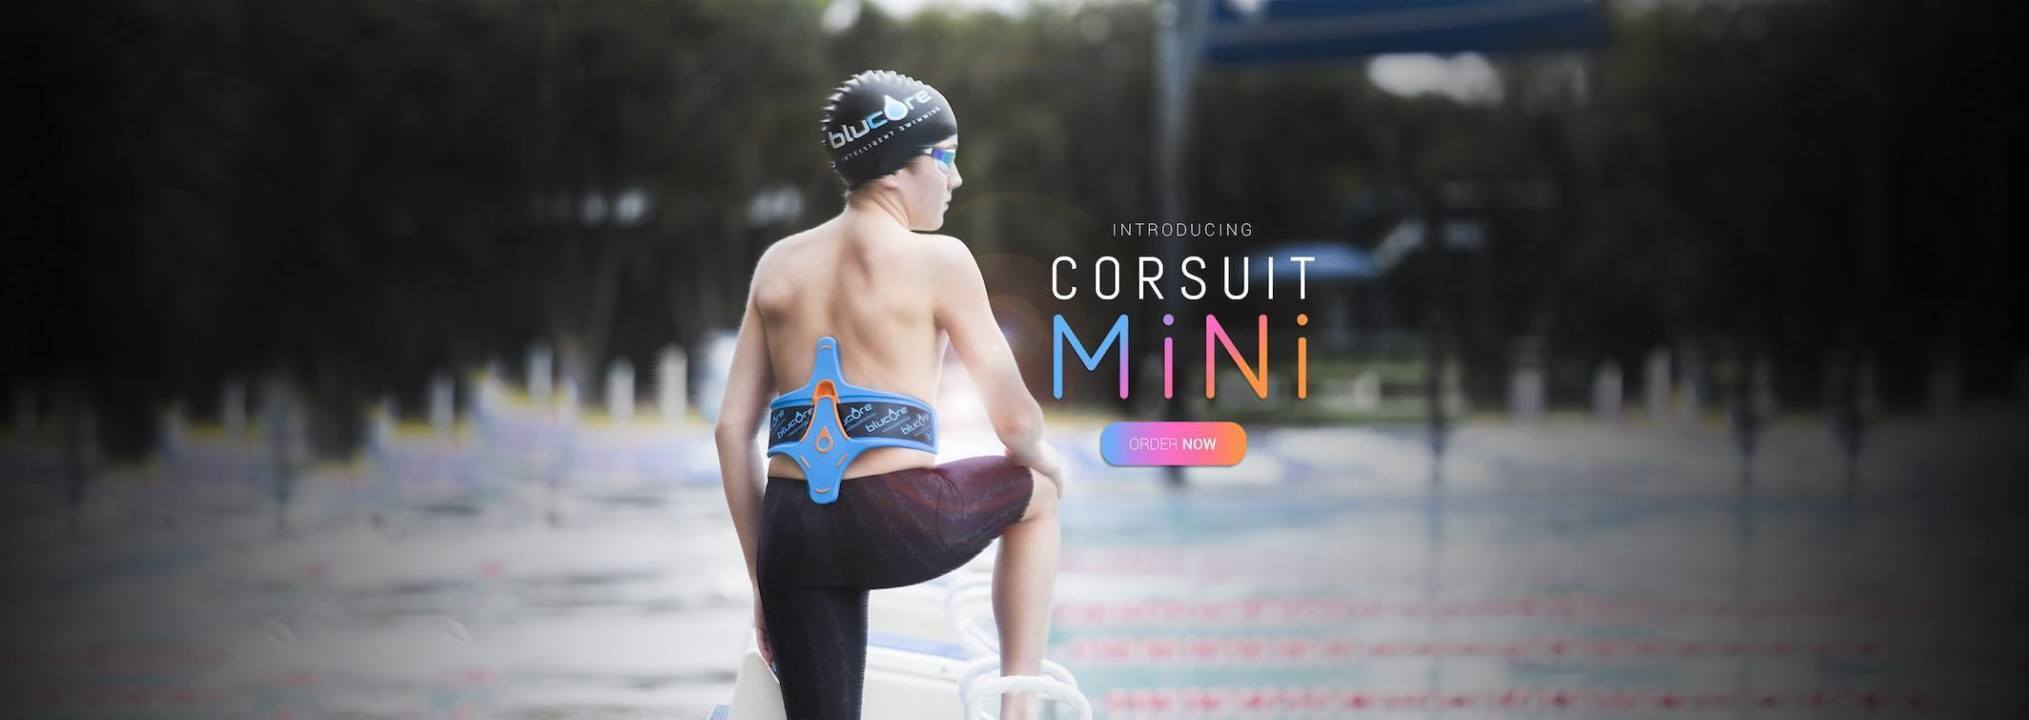 Blucore Launches the Corsuit Mini